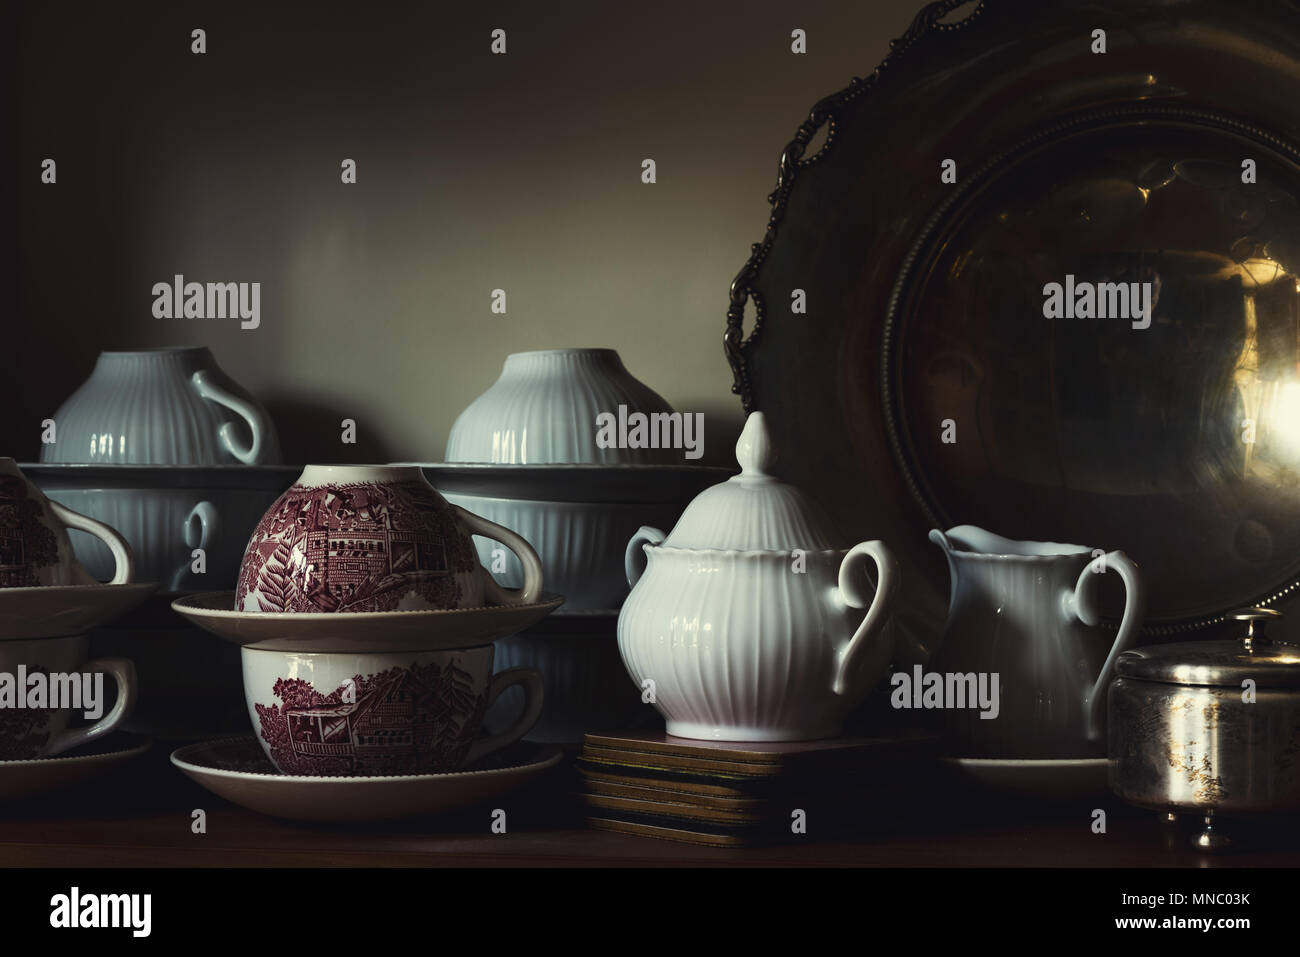 Cups and saucers - Stock Image